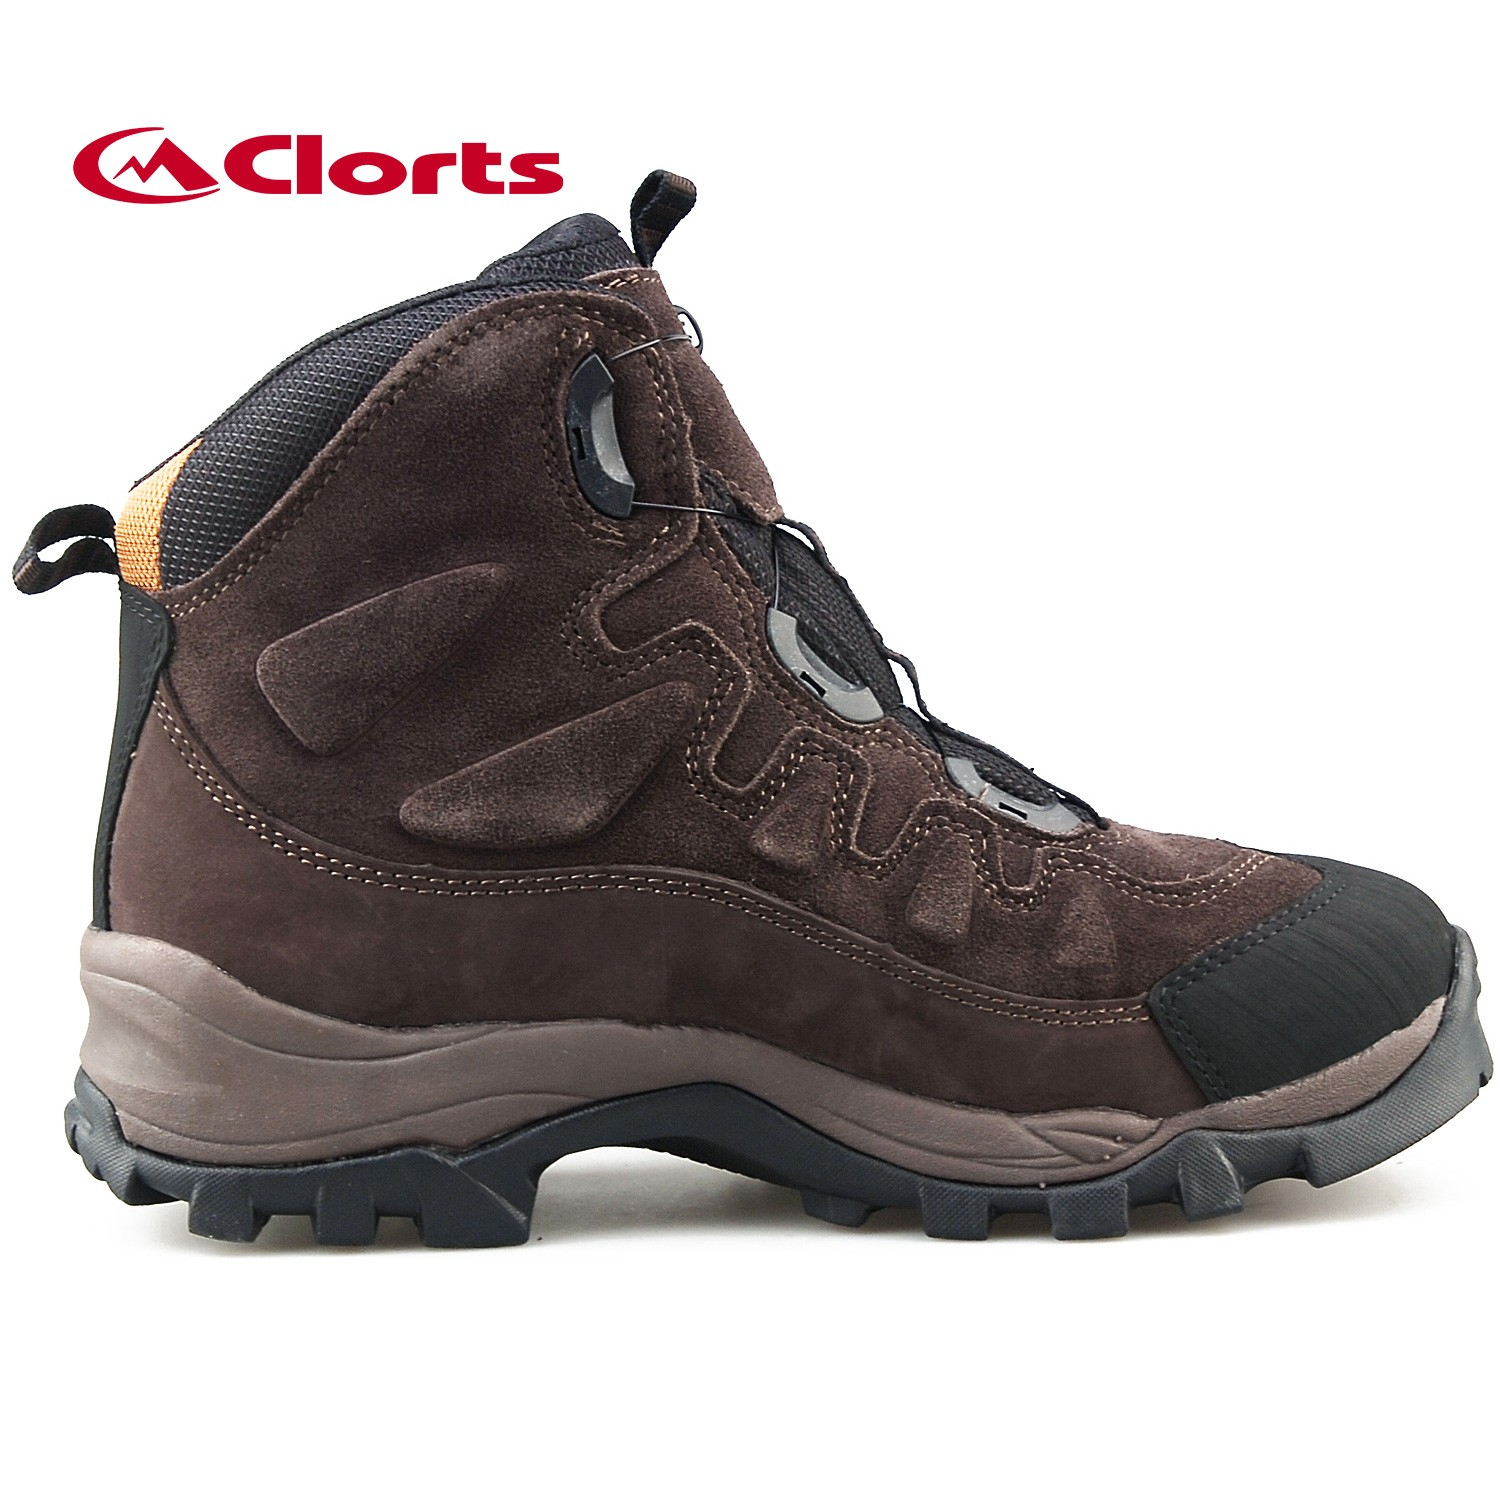 Mens Mountaineering Boots Hiking Shoes Manufacturers, Mens Mountaineering Boots Hiking Shoes Factory, Supply Mens Mountaineering Boots Hiking Shoes